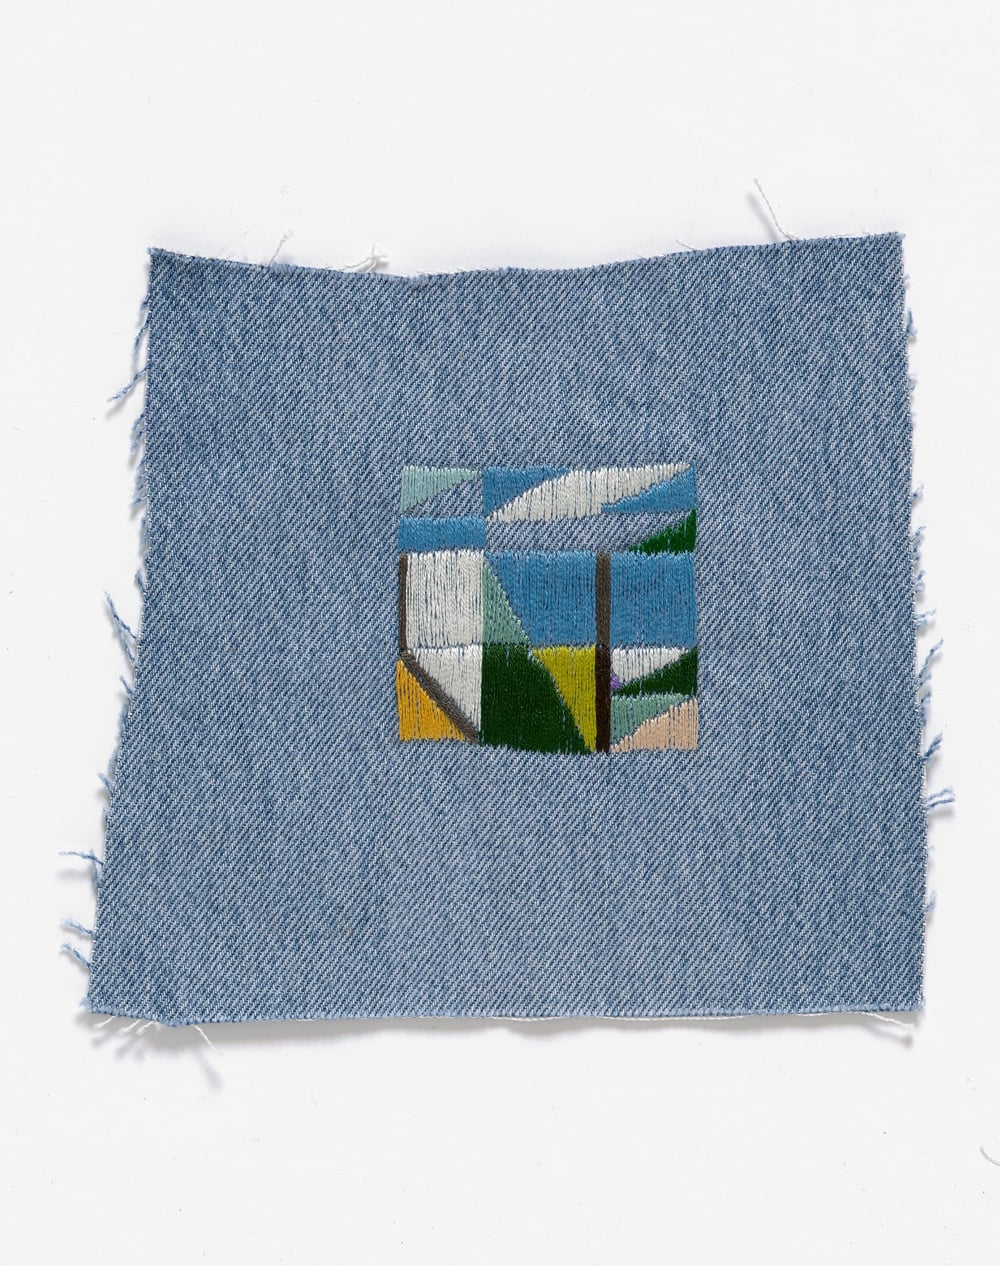 Return to the farm III 2015 Cotton thread on denim 18 x 17cm